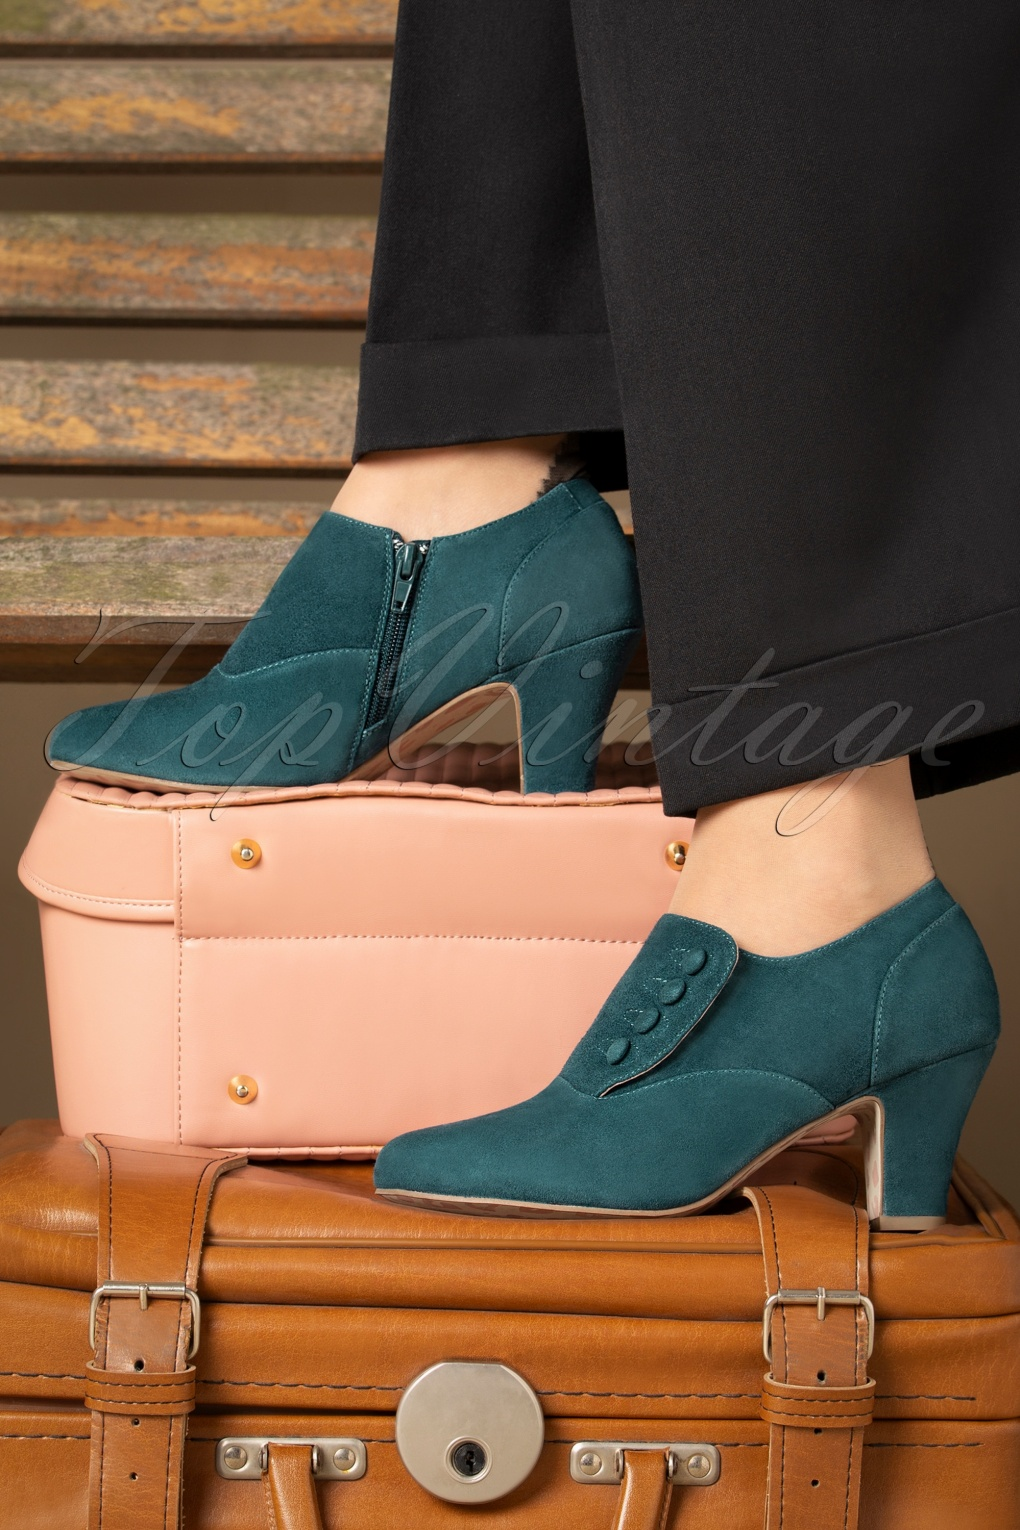 Vintage Heels, Retro Heels, Pumps, Shoes 40s Ava Right On Time Shoe Booties in Teal £107.32 AT vintagedancer.com